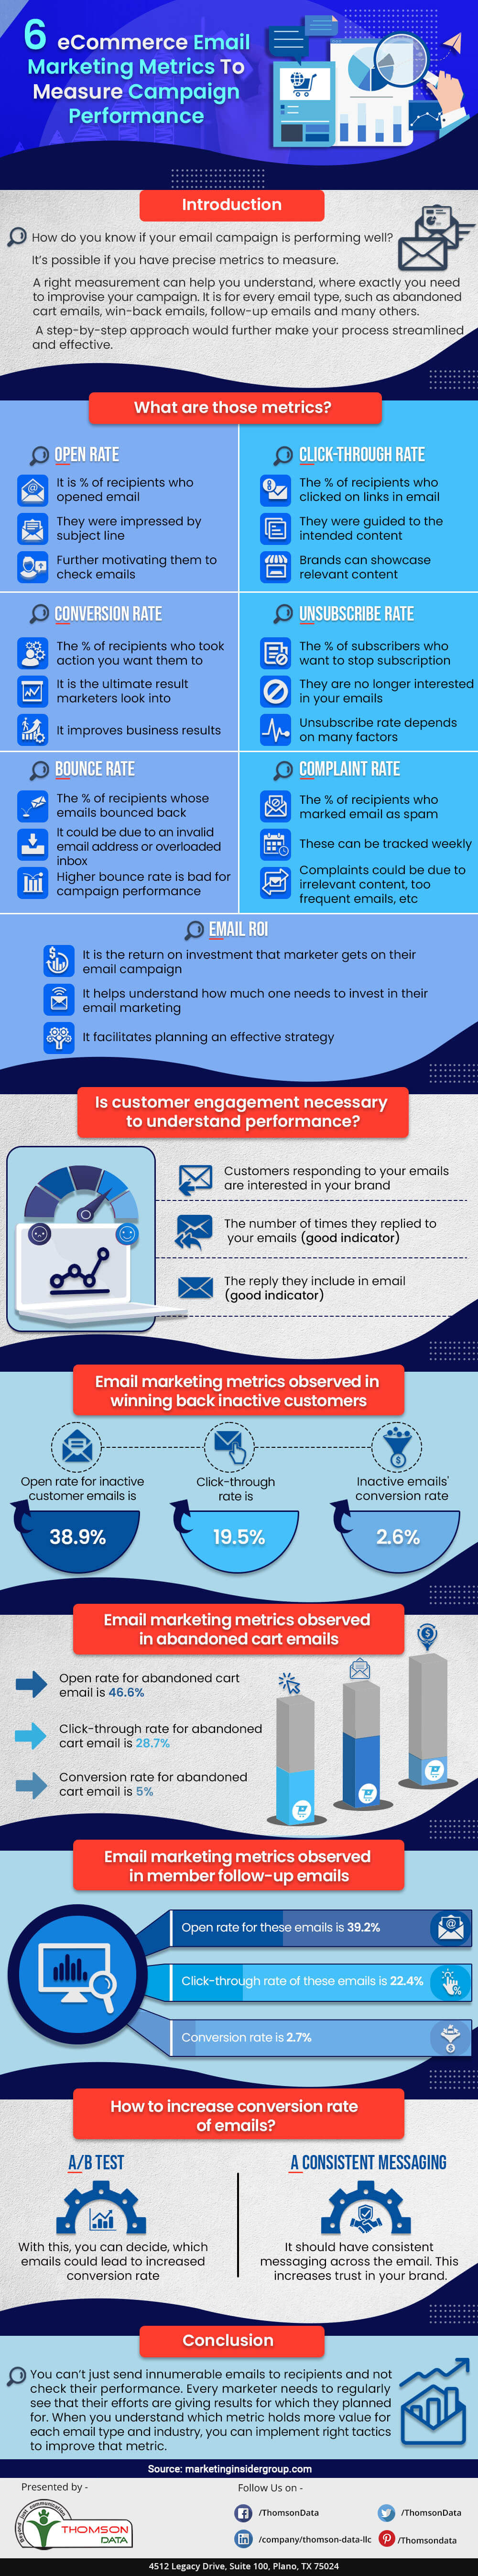 6 E-commerce Email Marketing Metrics to Measure Campaign Performance [Infographic]